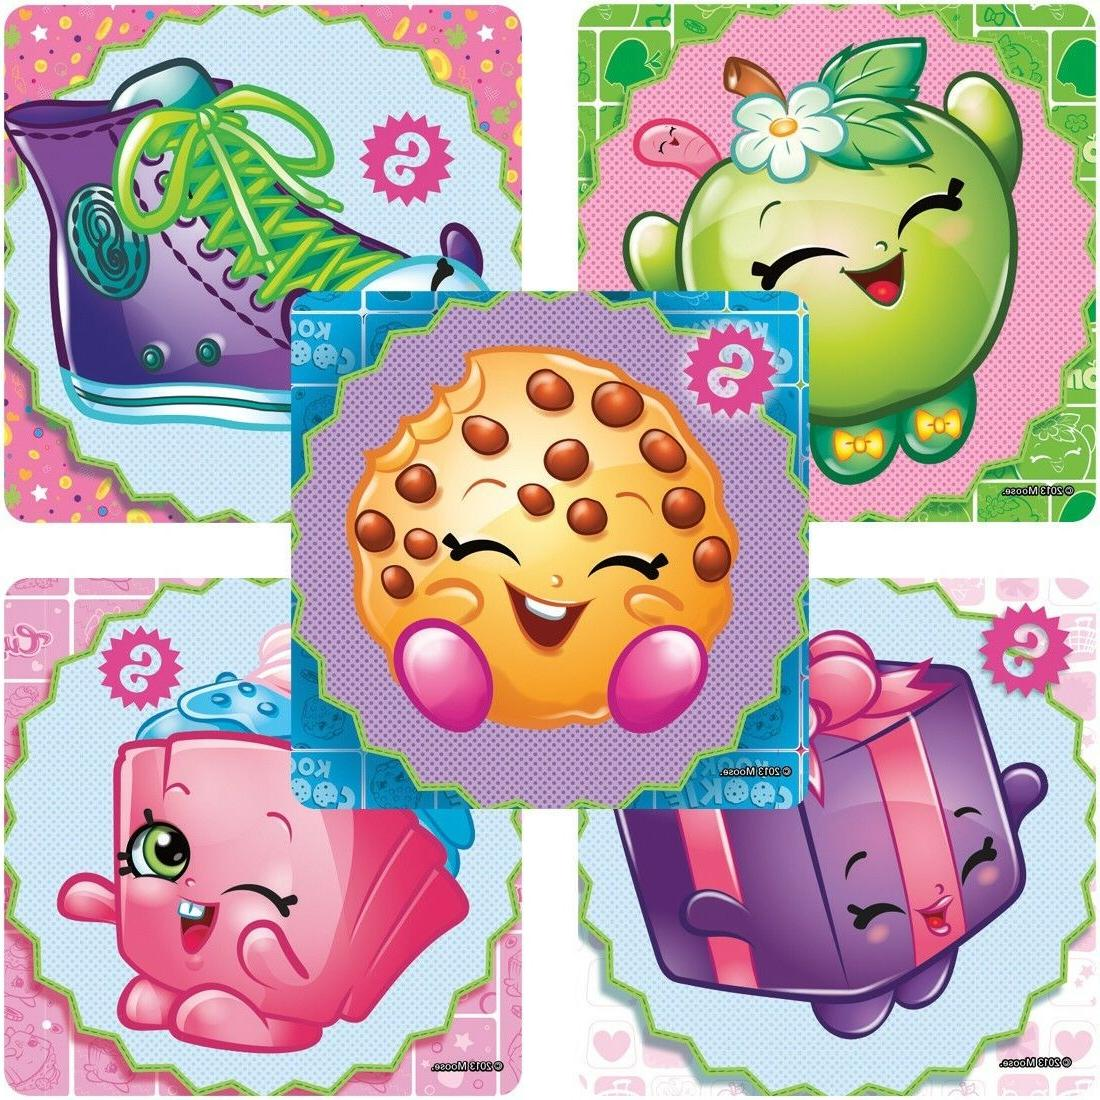 20 shopkins stickers party favors supplies birthday